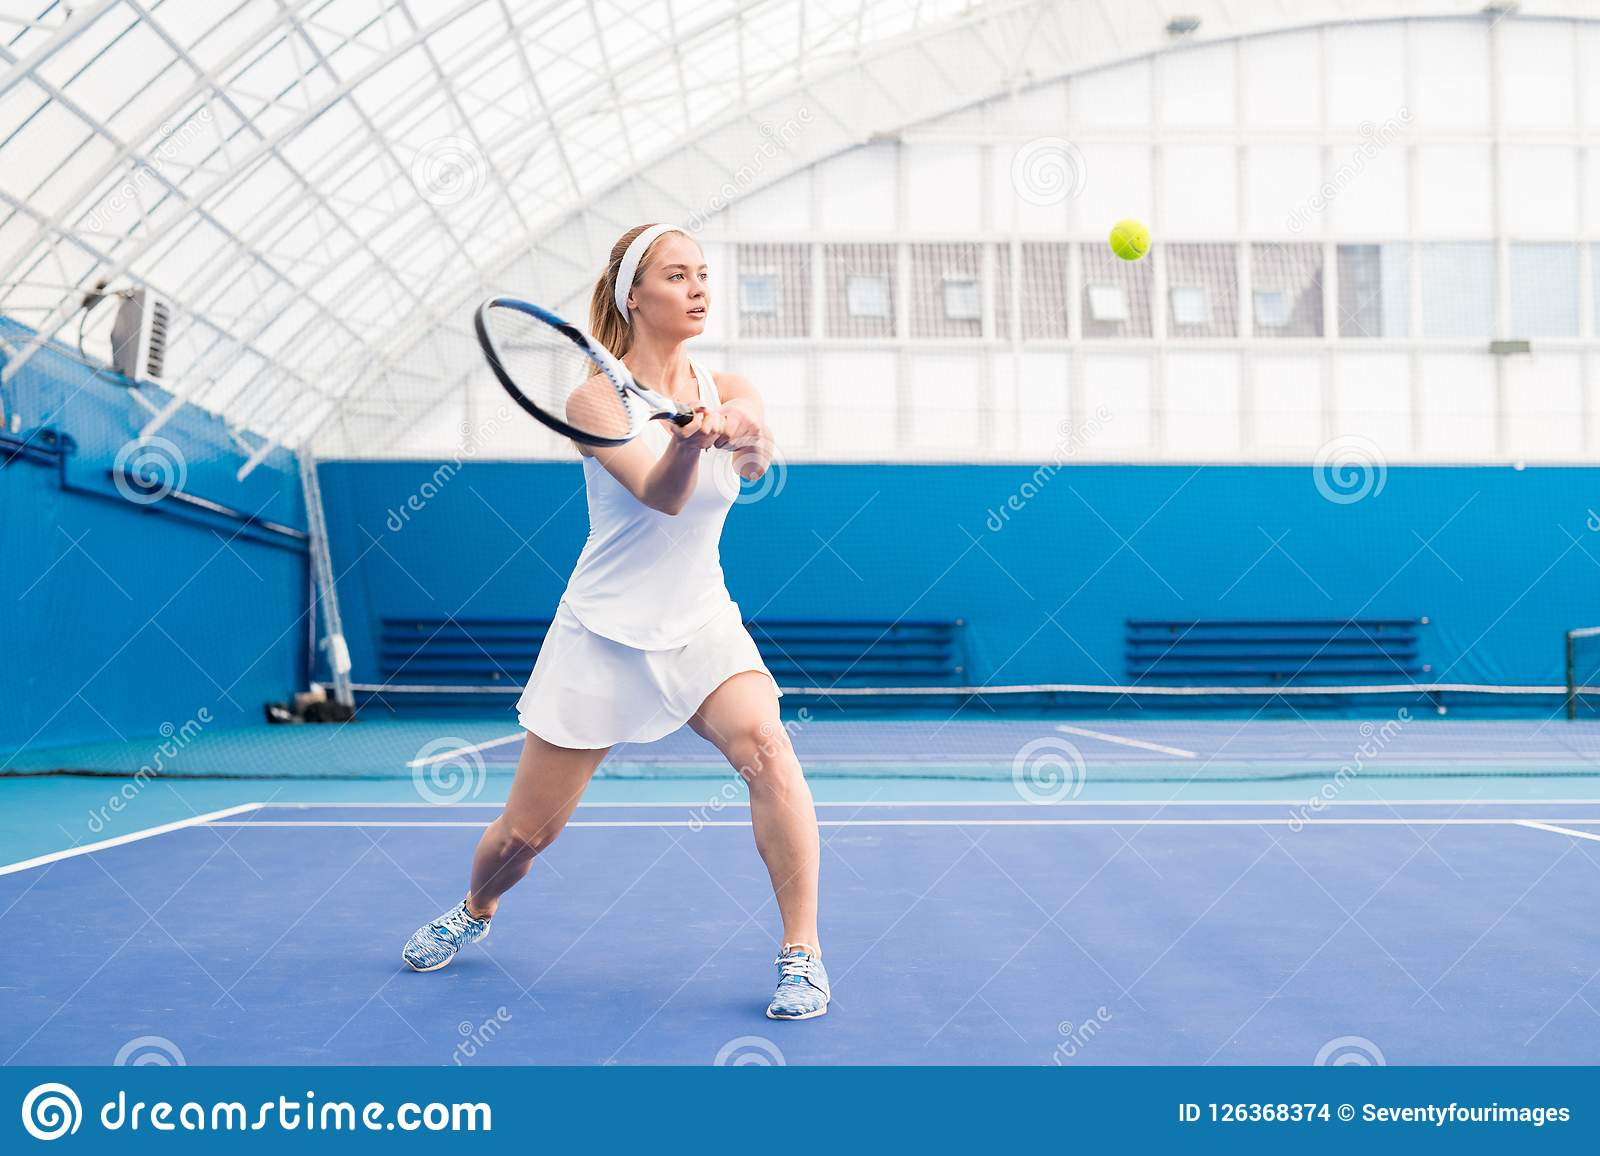 Blonde Young Woman Playing Tennis